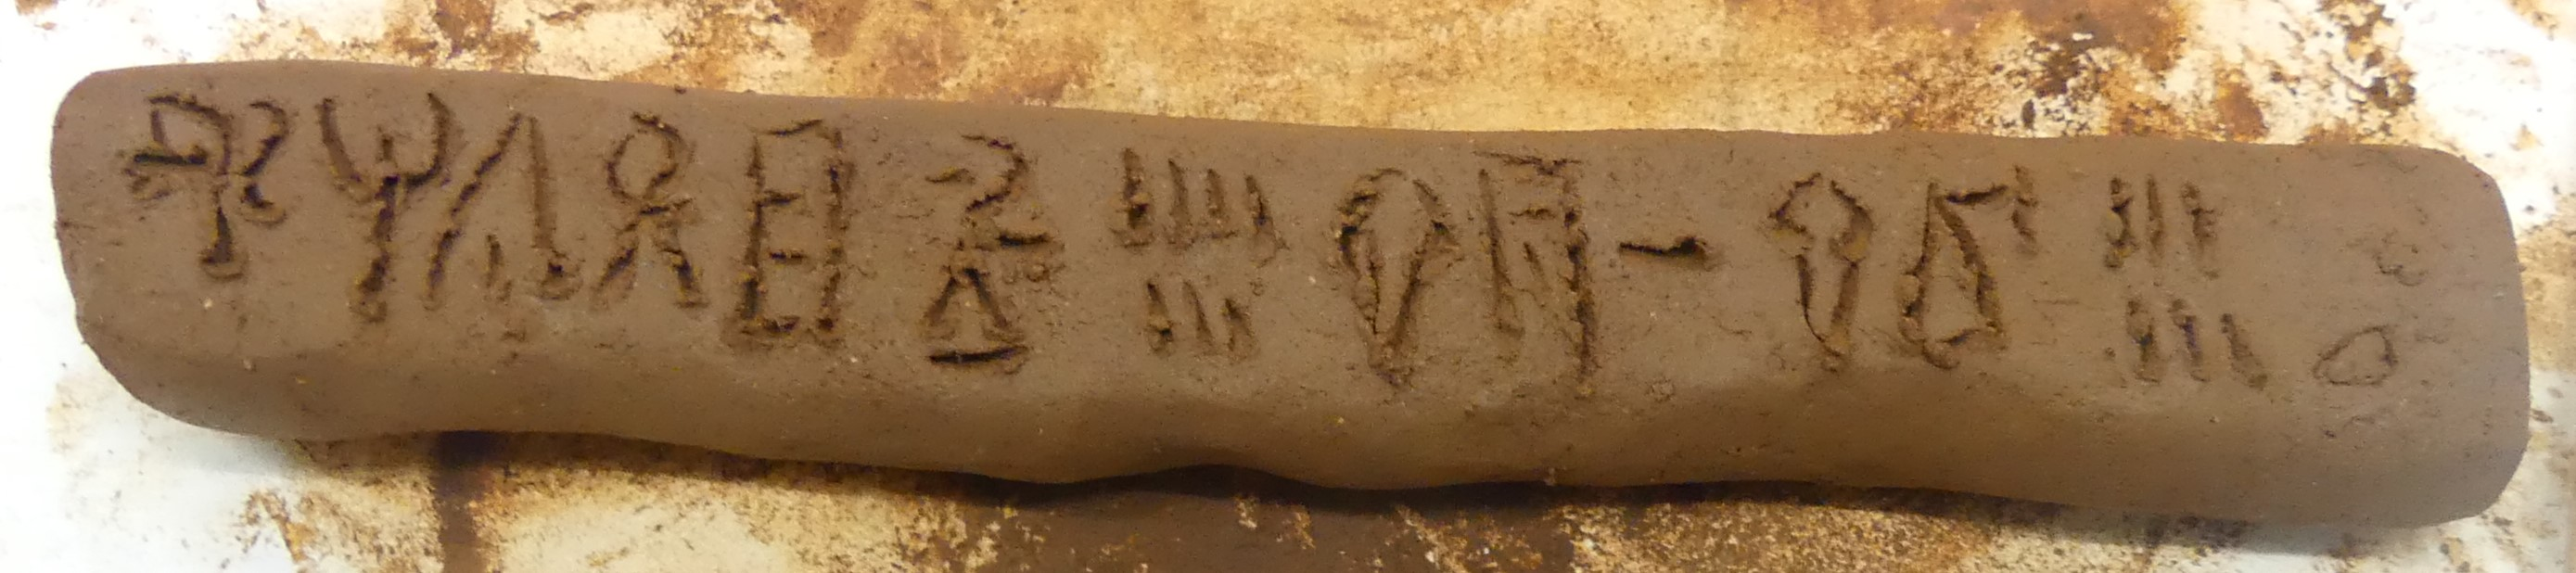 Long, thin clay tablet with large Linear B signs inscribed on its flat top surface